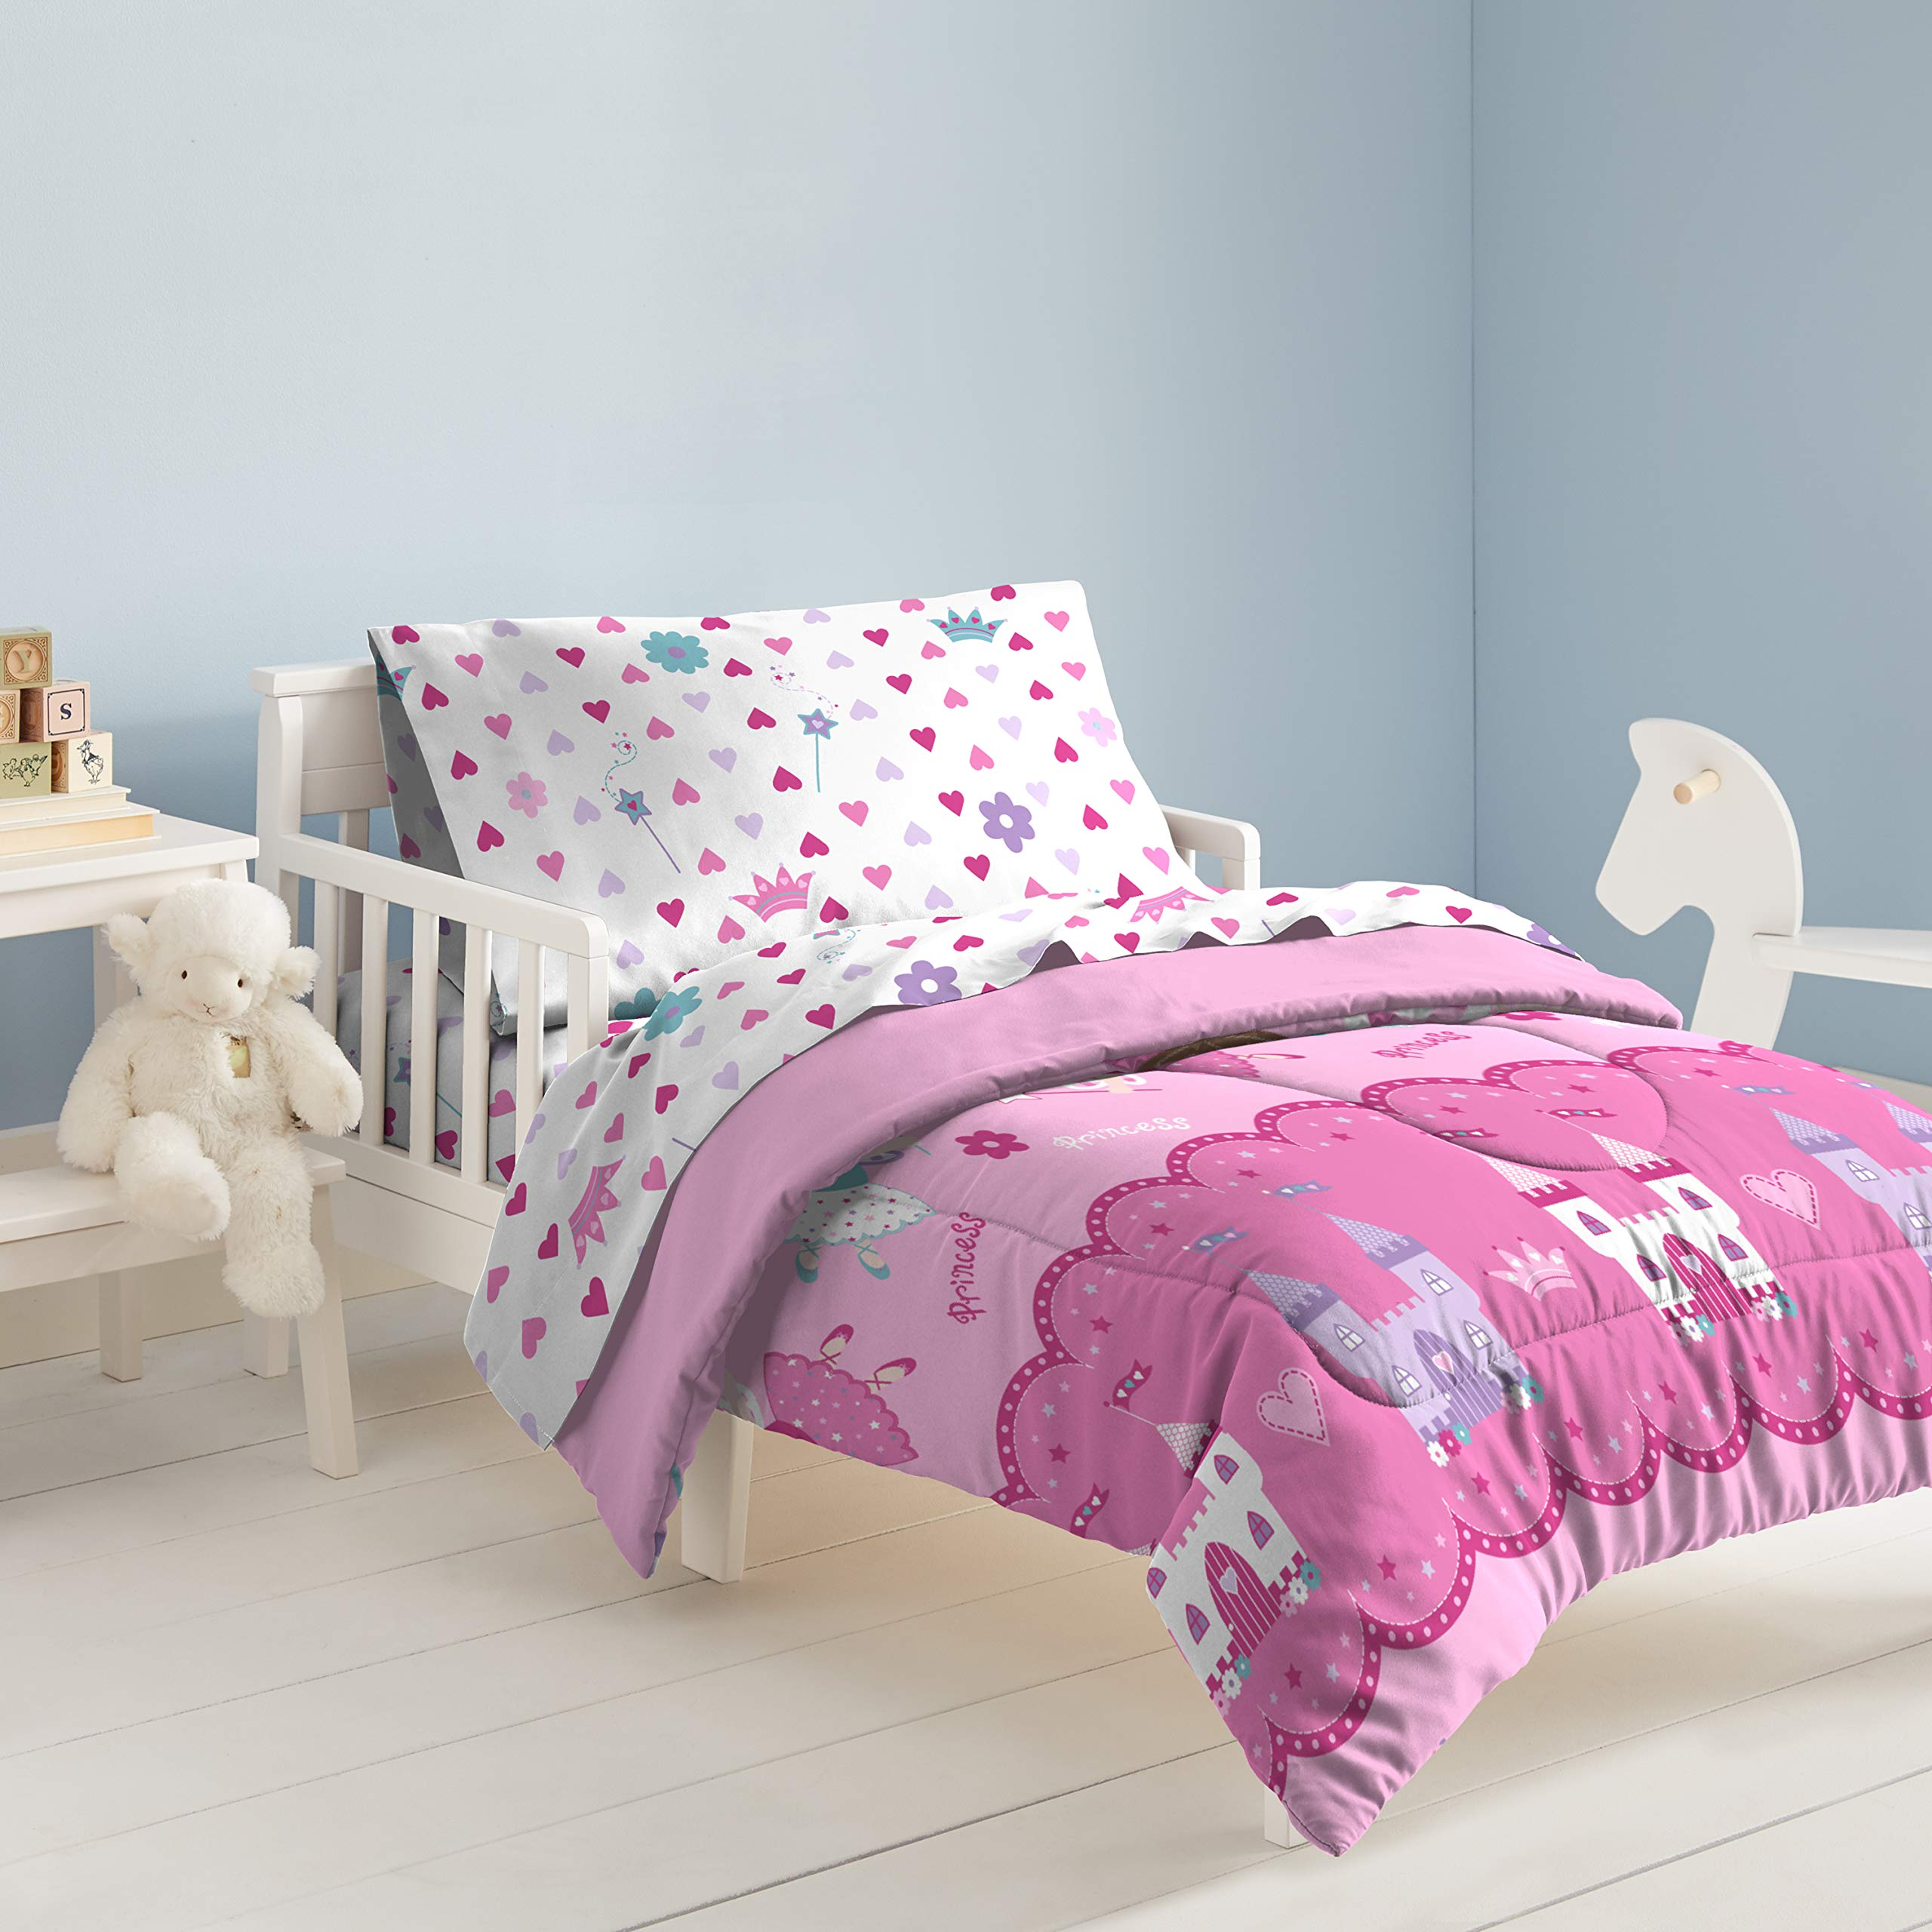 dream FACTORY Magical Princess 4 Piece Bedding Set, Toddler, Pink by dream FACTORY